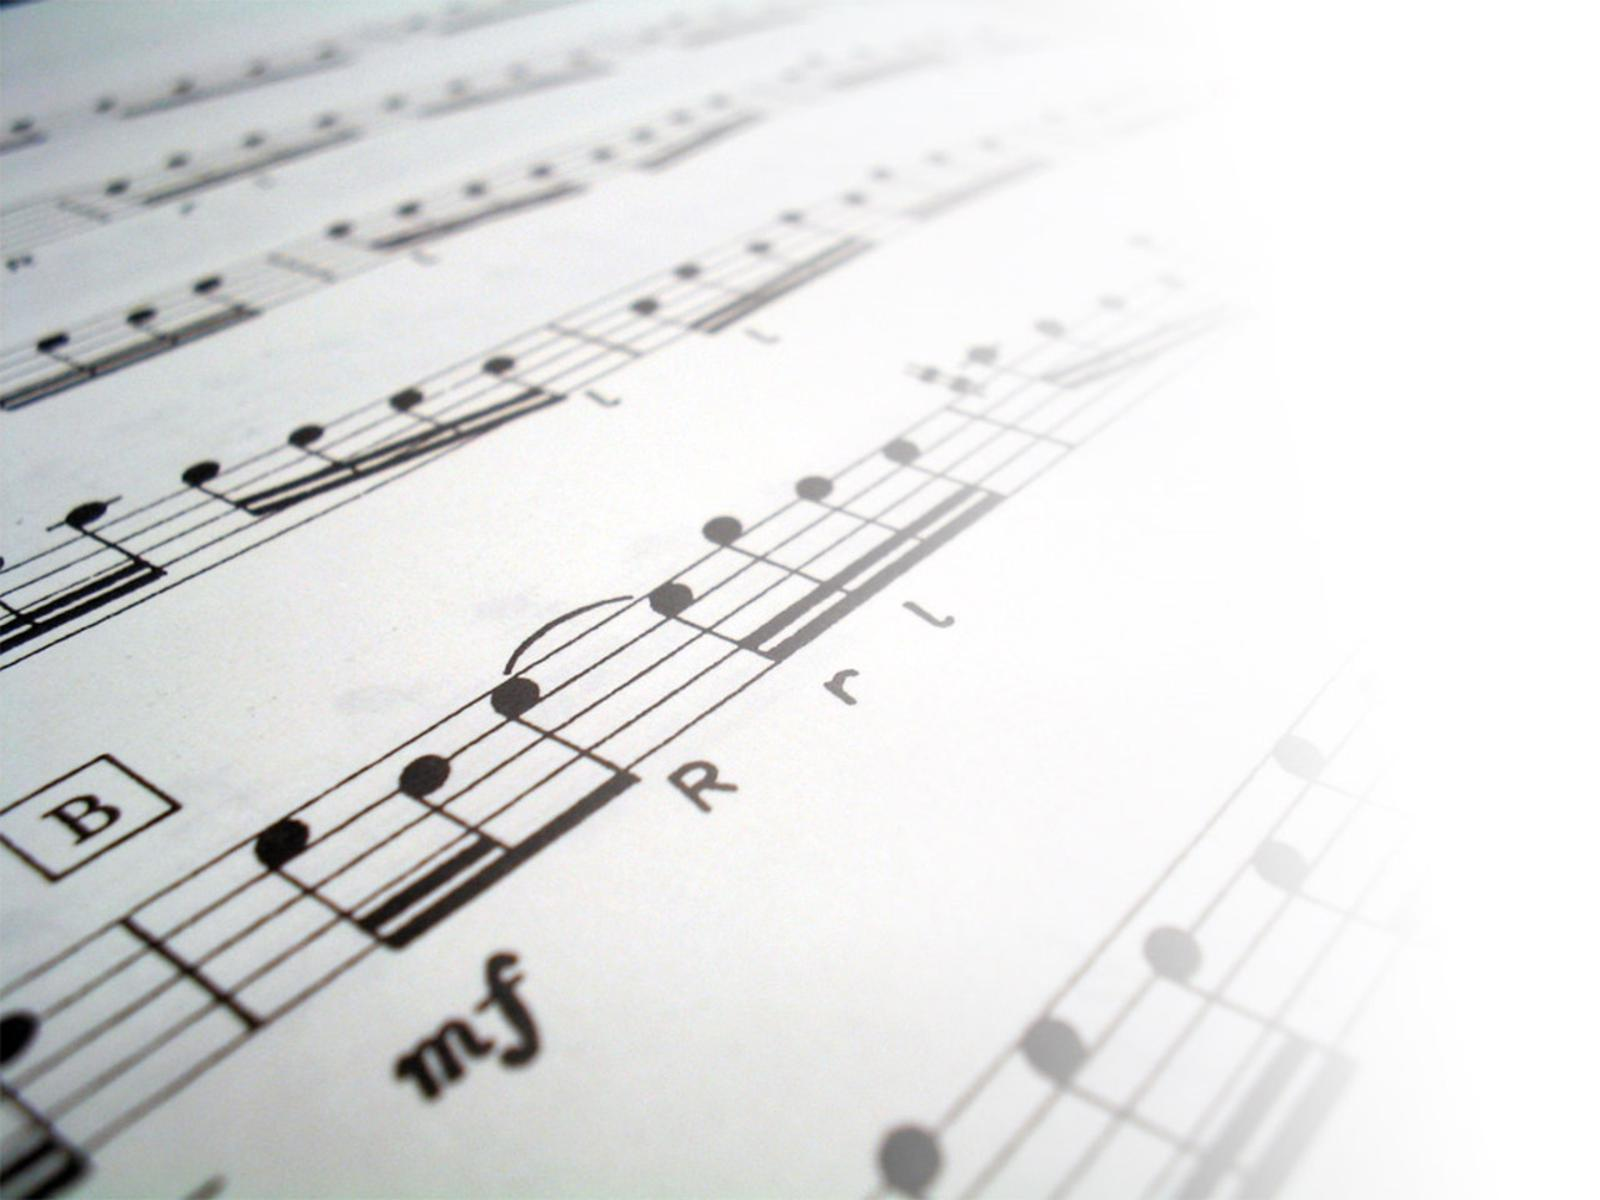 how to write good songs A brief, practical guide to writing simple songs that sound good, starting with minimal musical background.